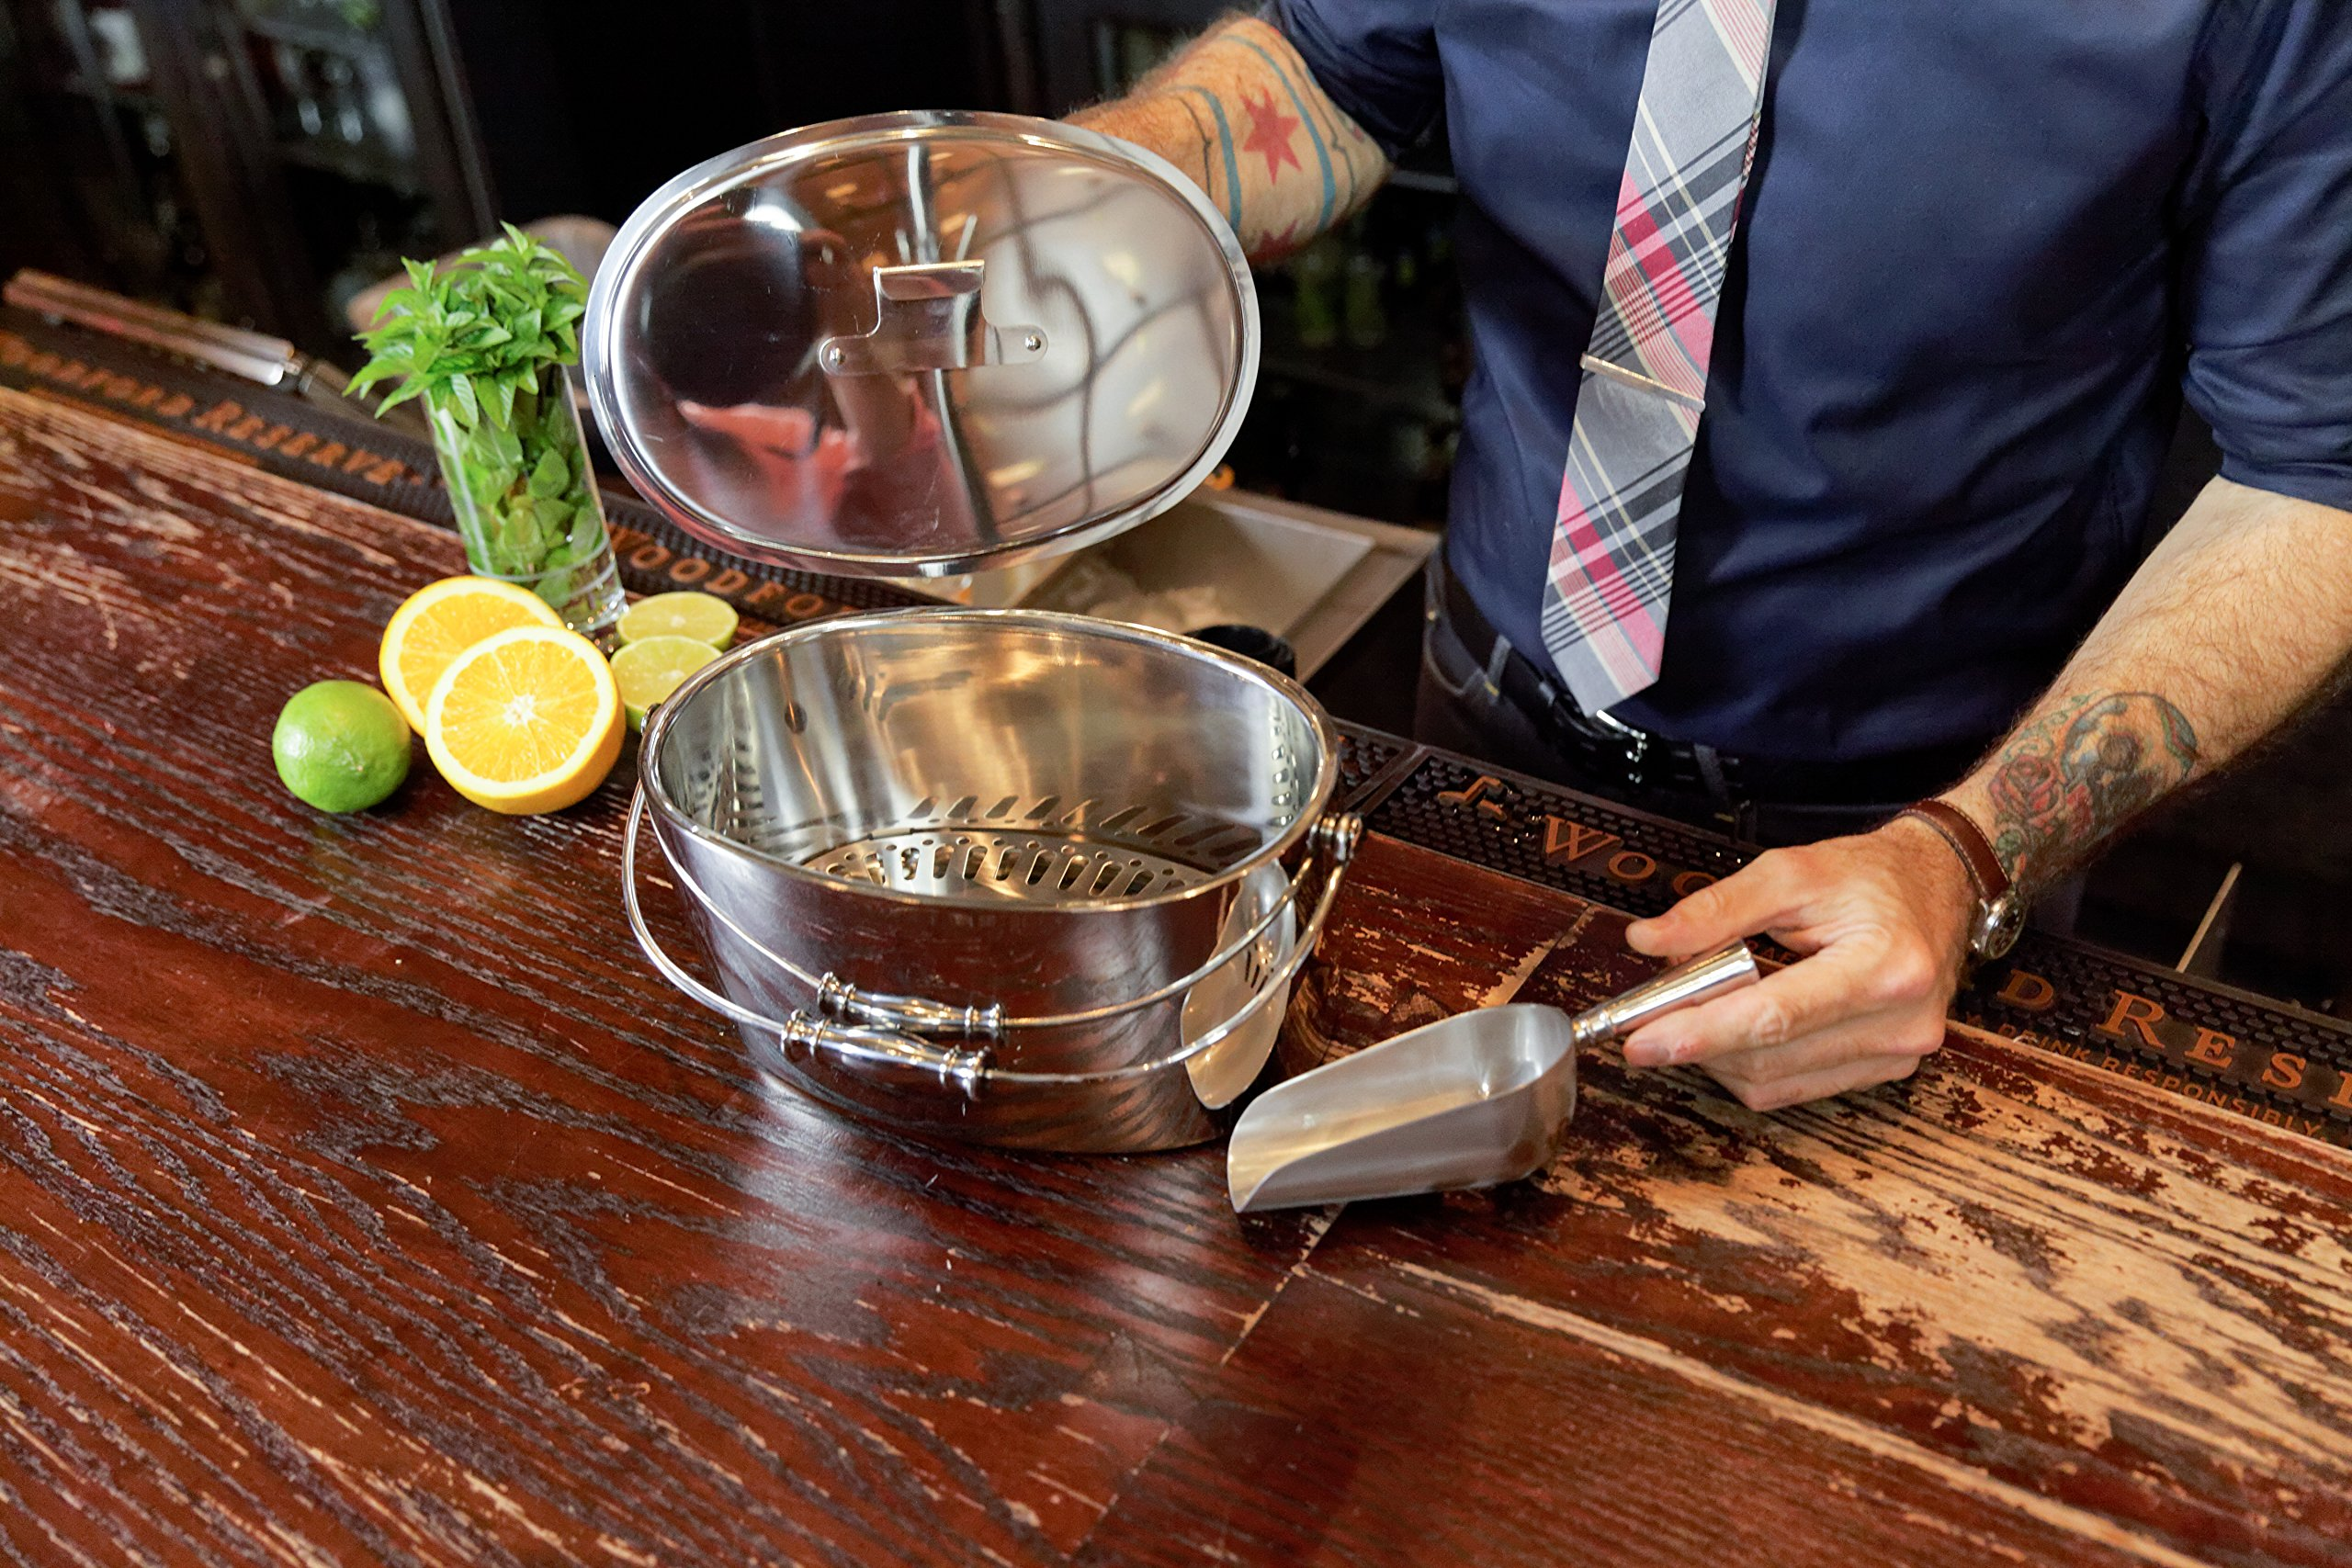 Crafthouse by Fortessa Professional Metal Barware/Bar Tools by Charles Joly, 12'' x 5.25'' Stainless Steel Ice Bucket with Handle and Drain Tray by Crafthouse by Fortessa (Image #2)